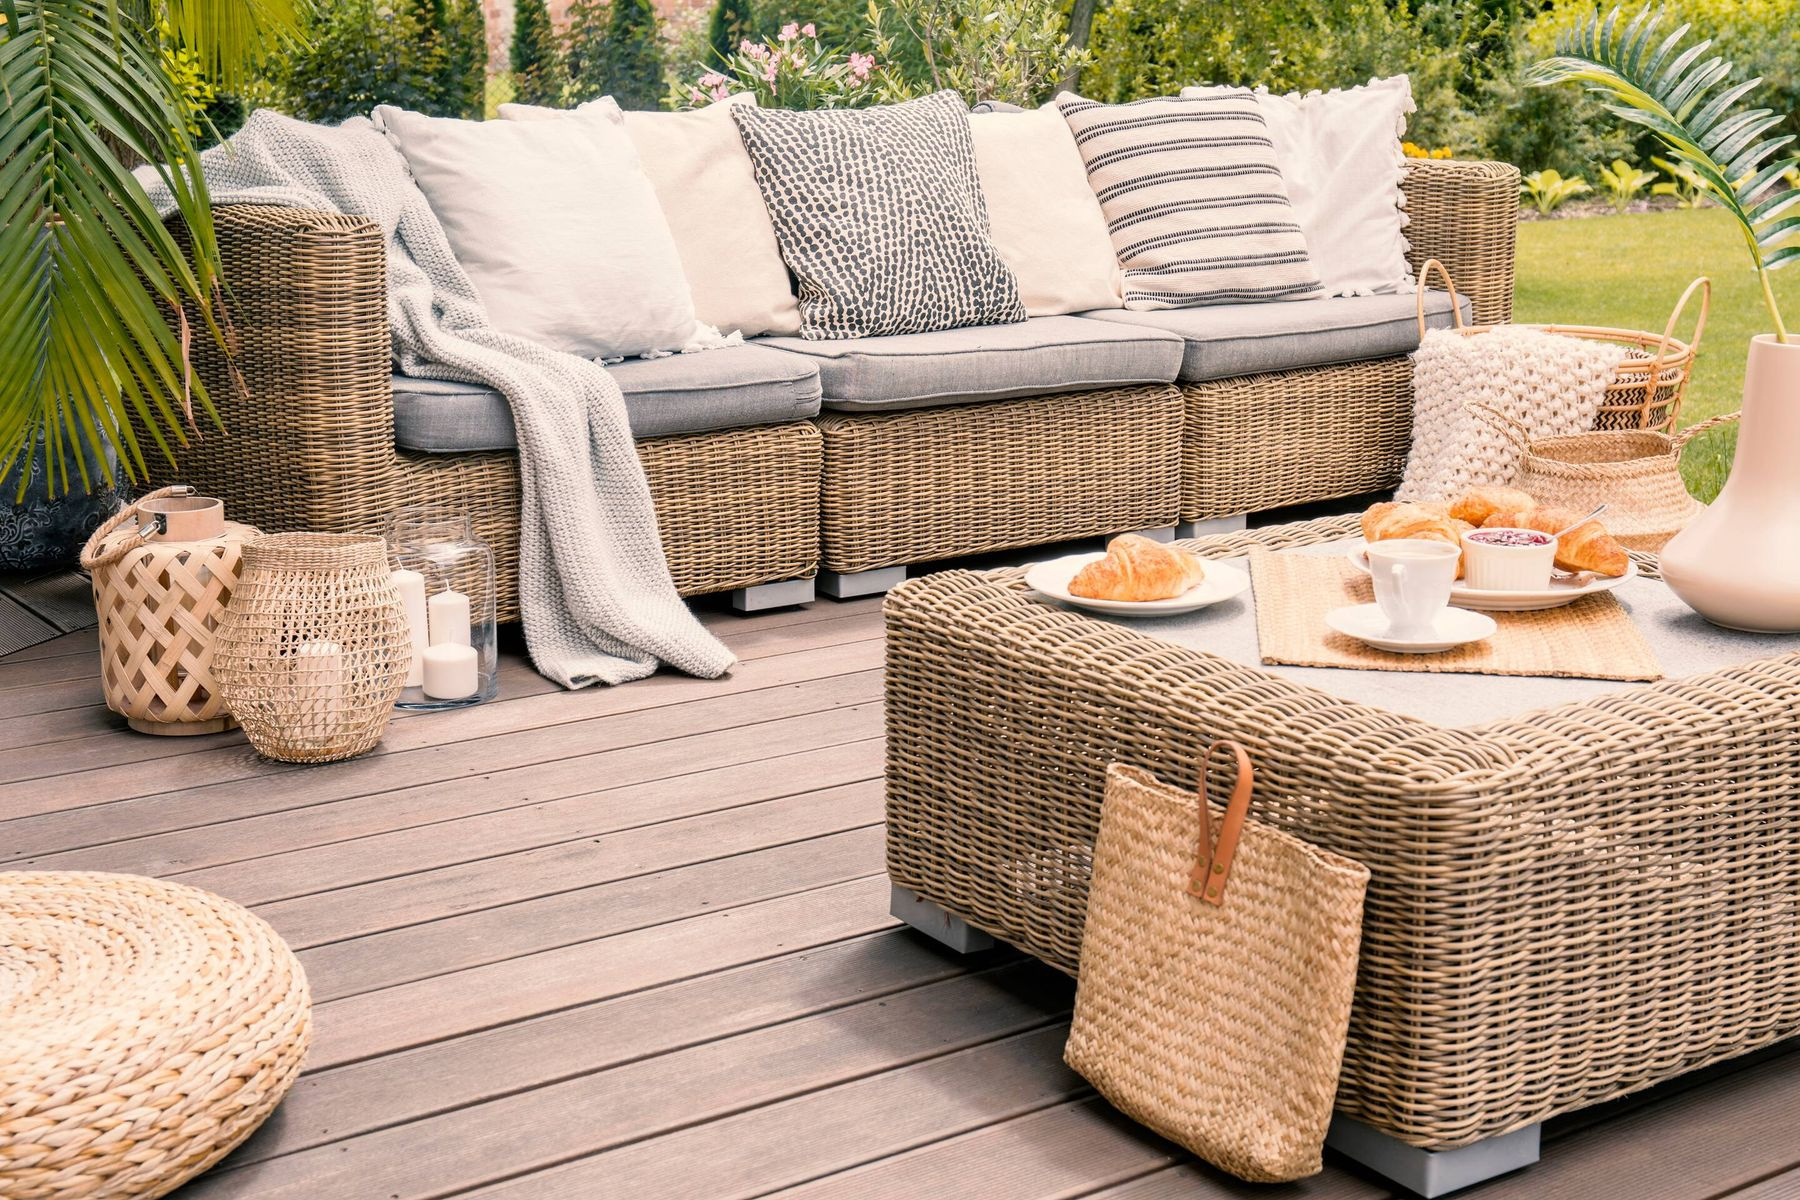 how to clean your wicker furniture in 5 steps